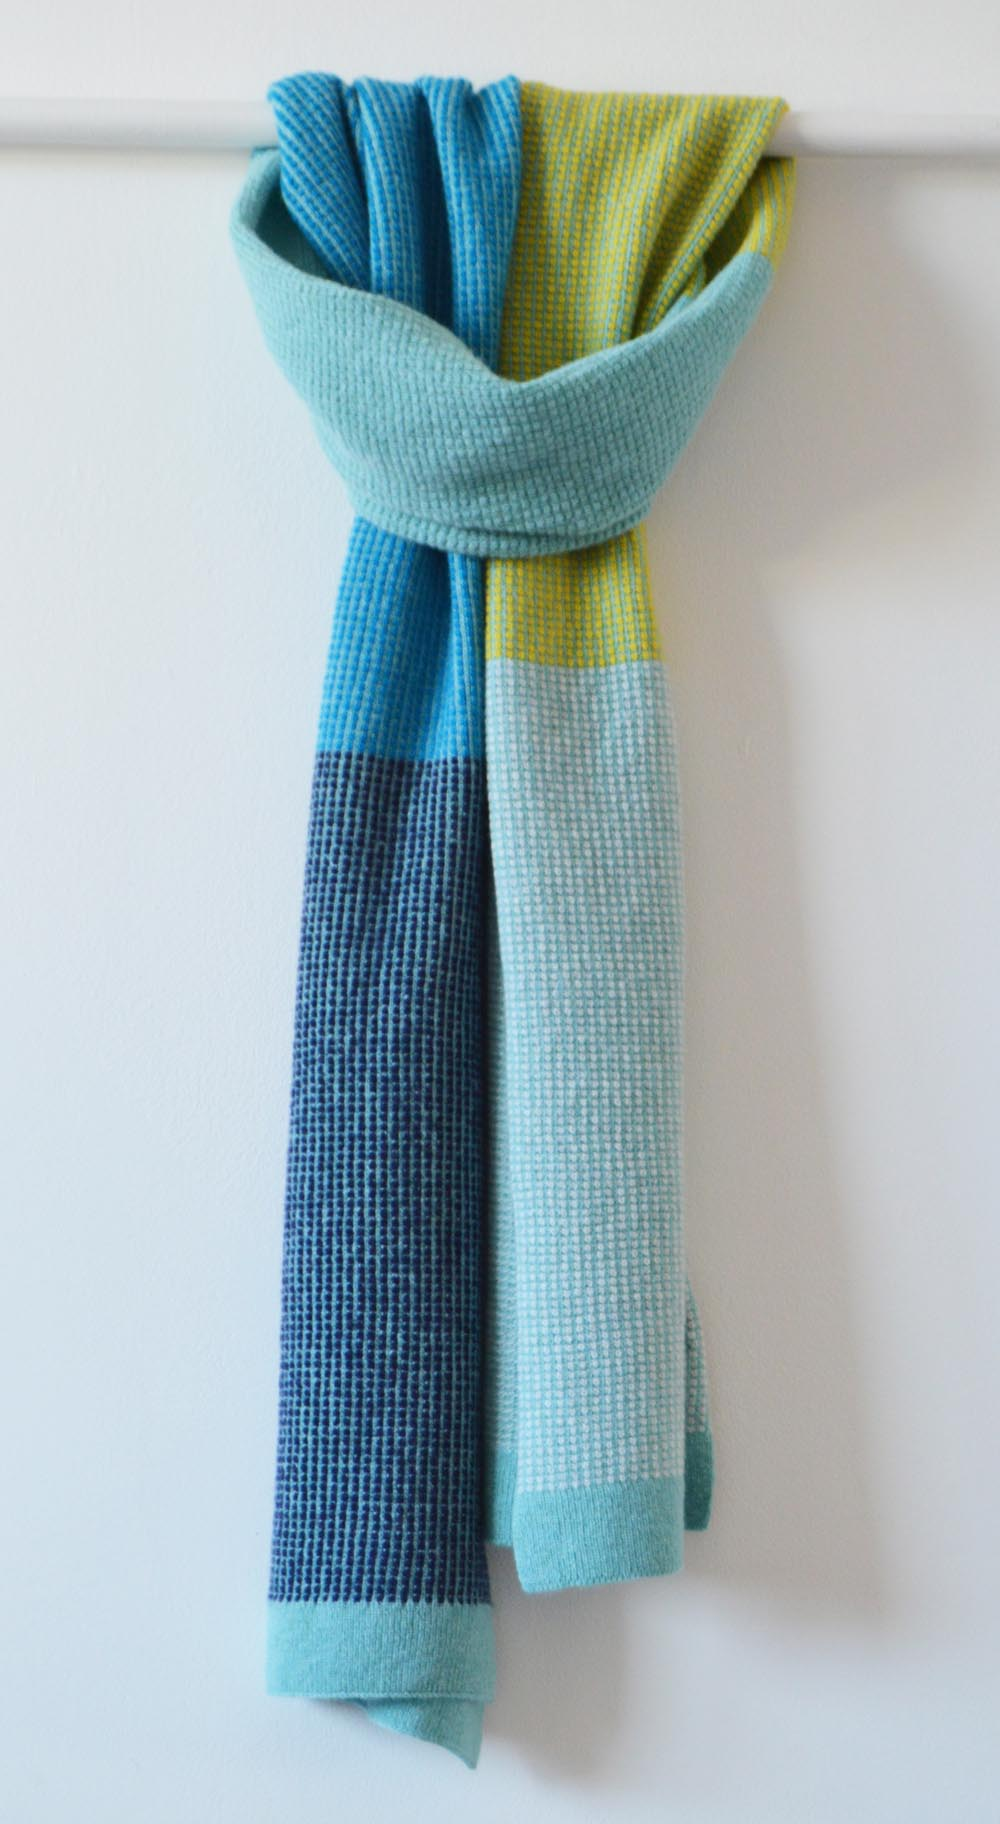 Iona Scarf made with finest soft wool